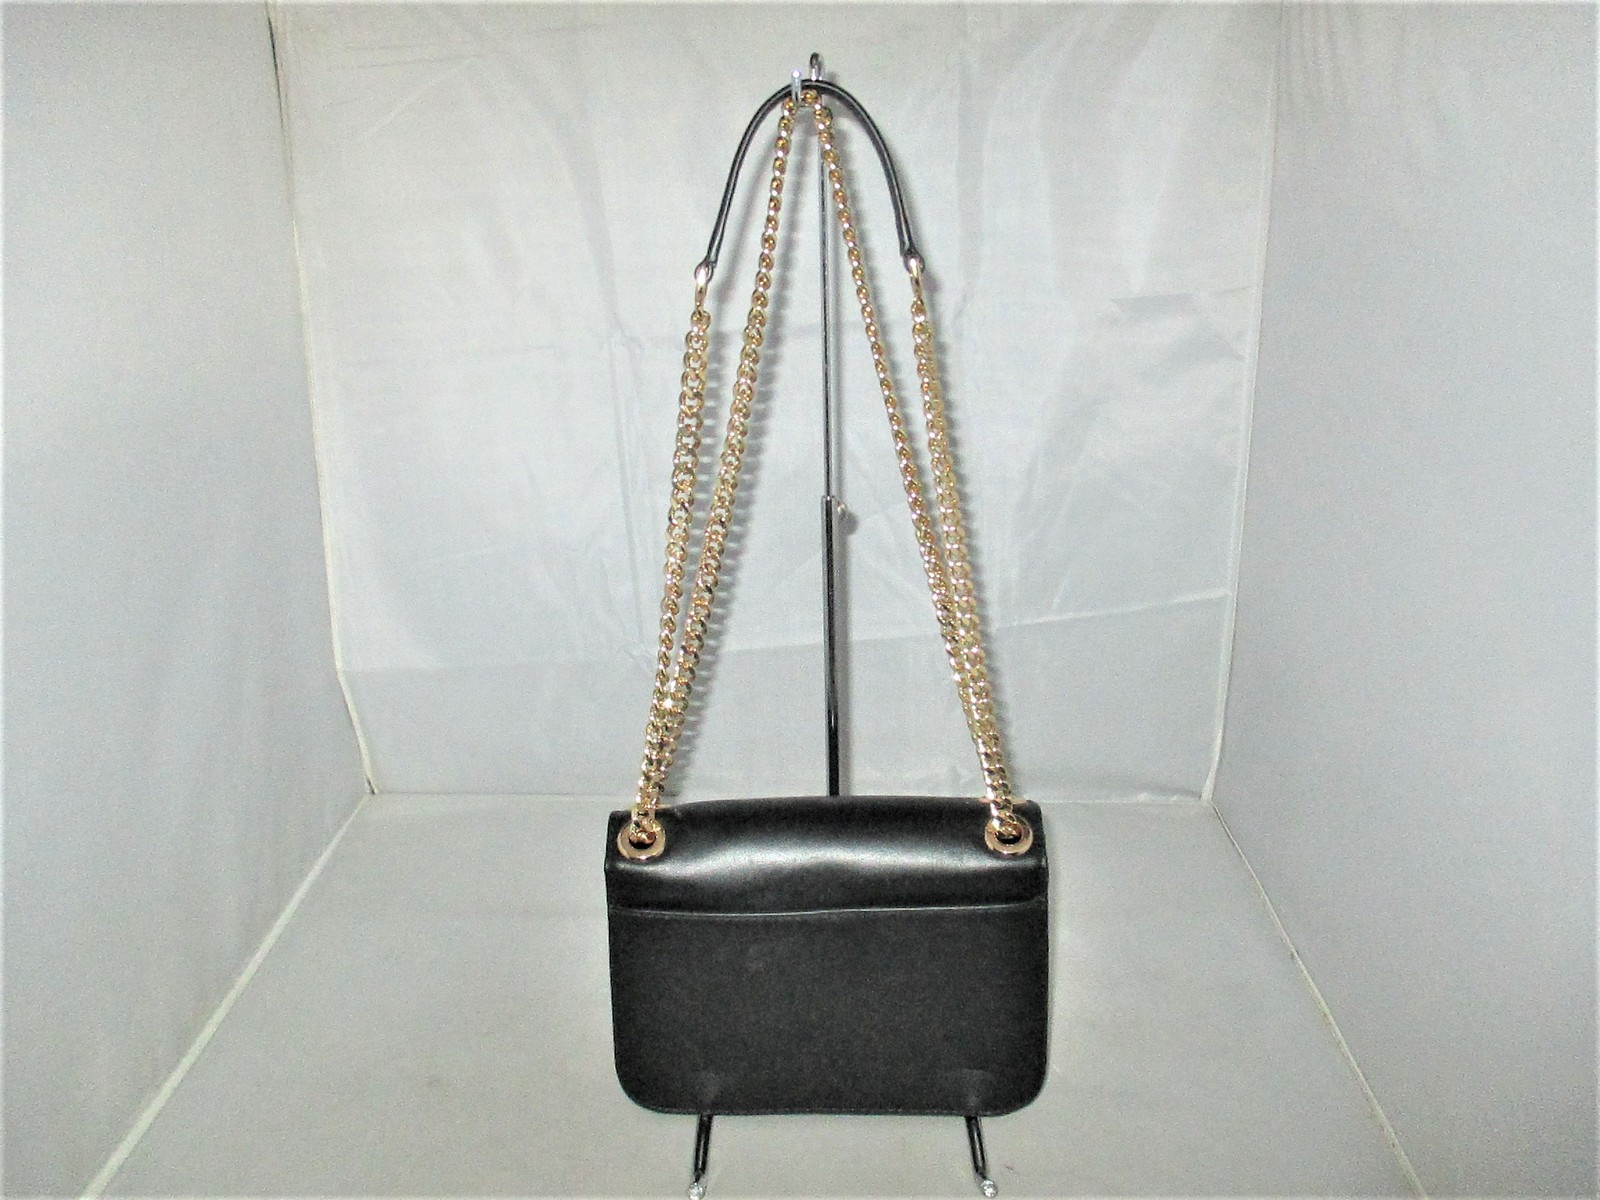 3baf5626b6a6ff Michael Kors Sloan Editor Medium Chain Shoulder Bag, Cross-Body, Messenger  $278